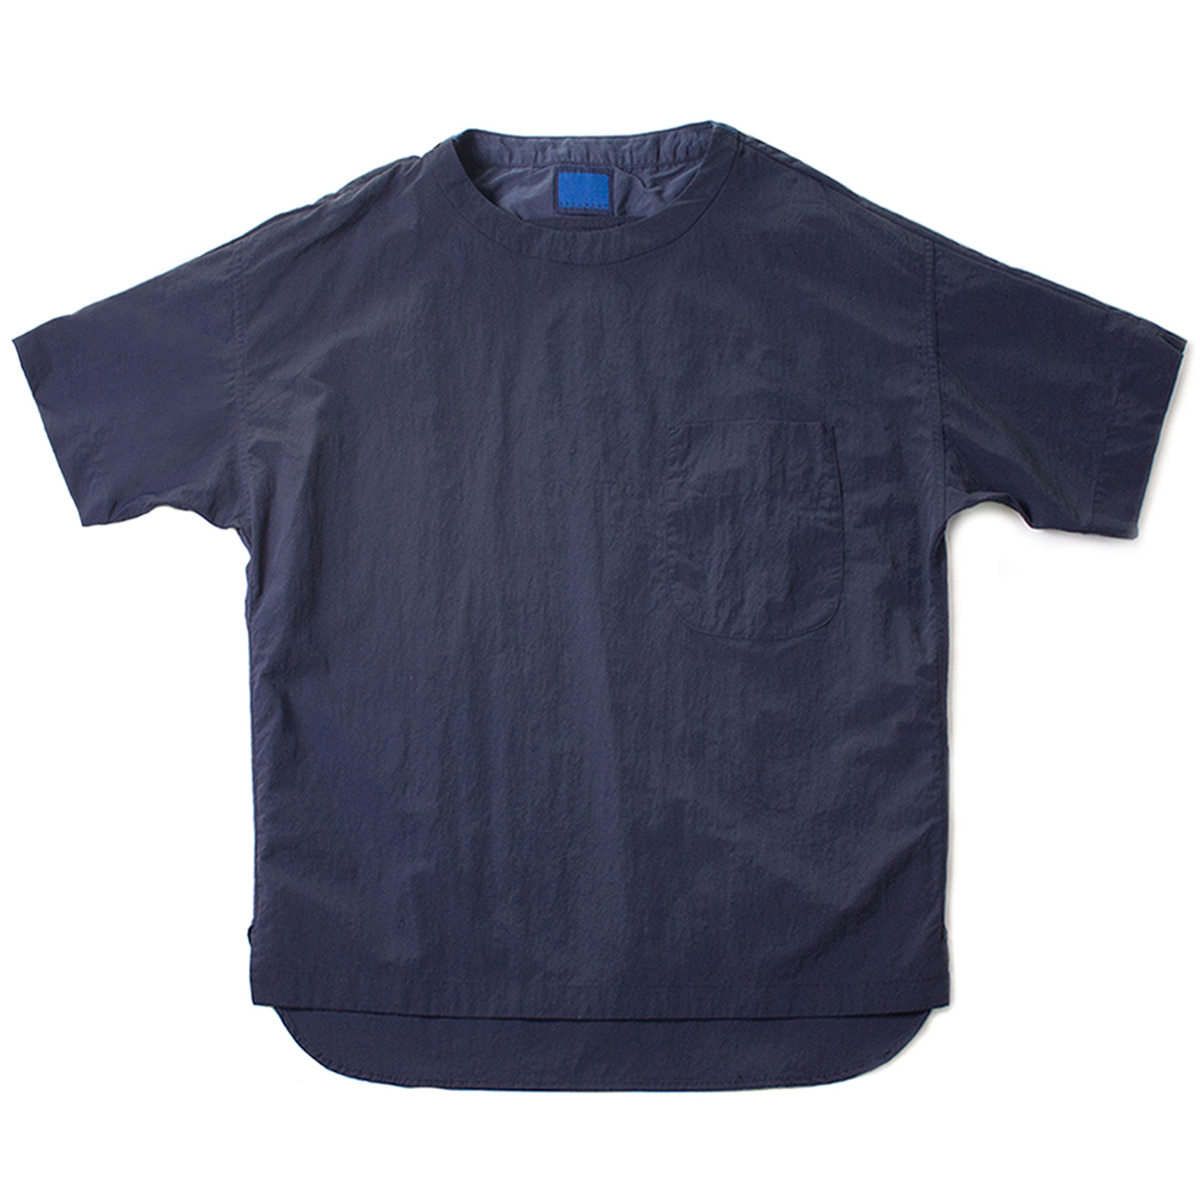 [DOCUMENT] M112 BOAT SHIRT 'NAVY'